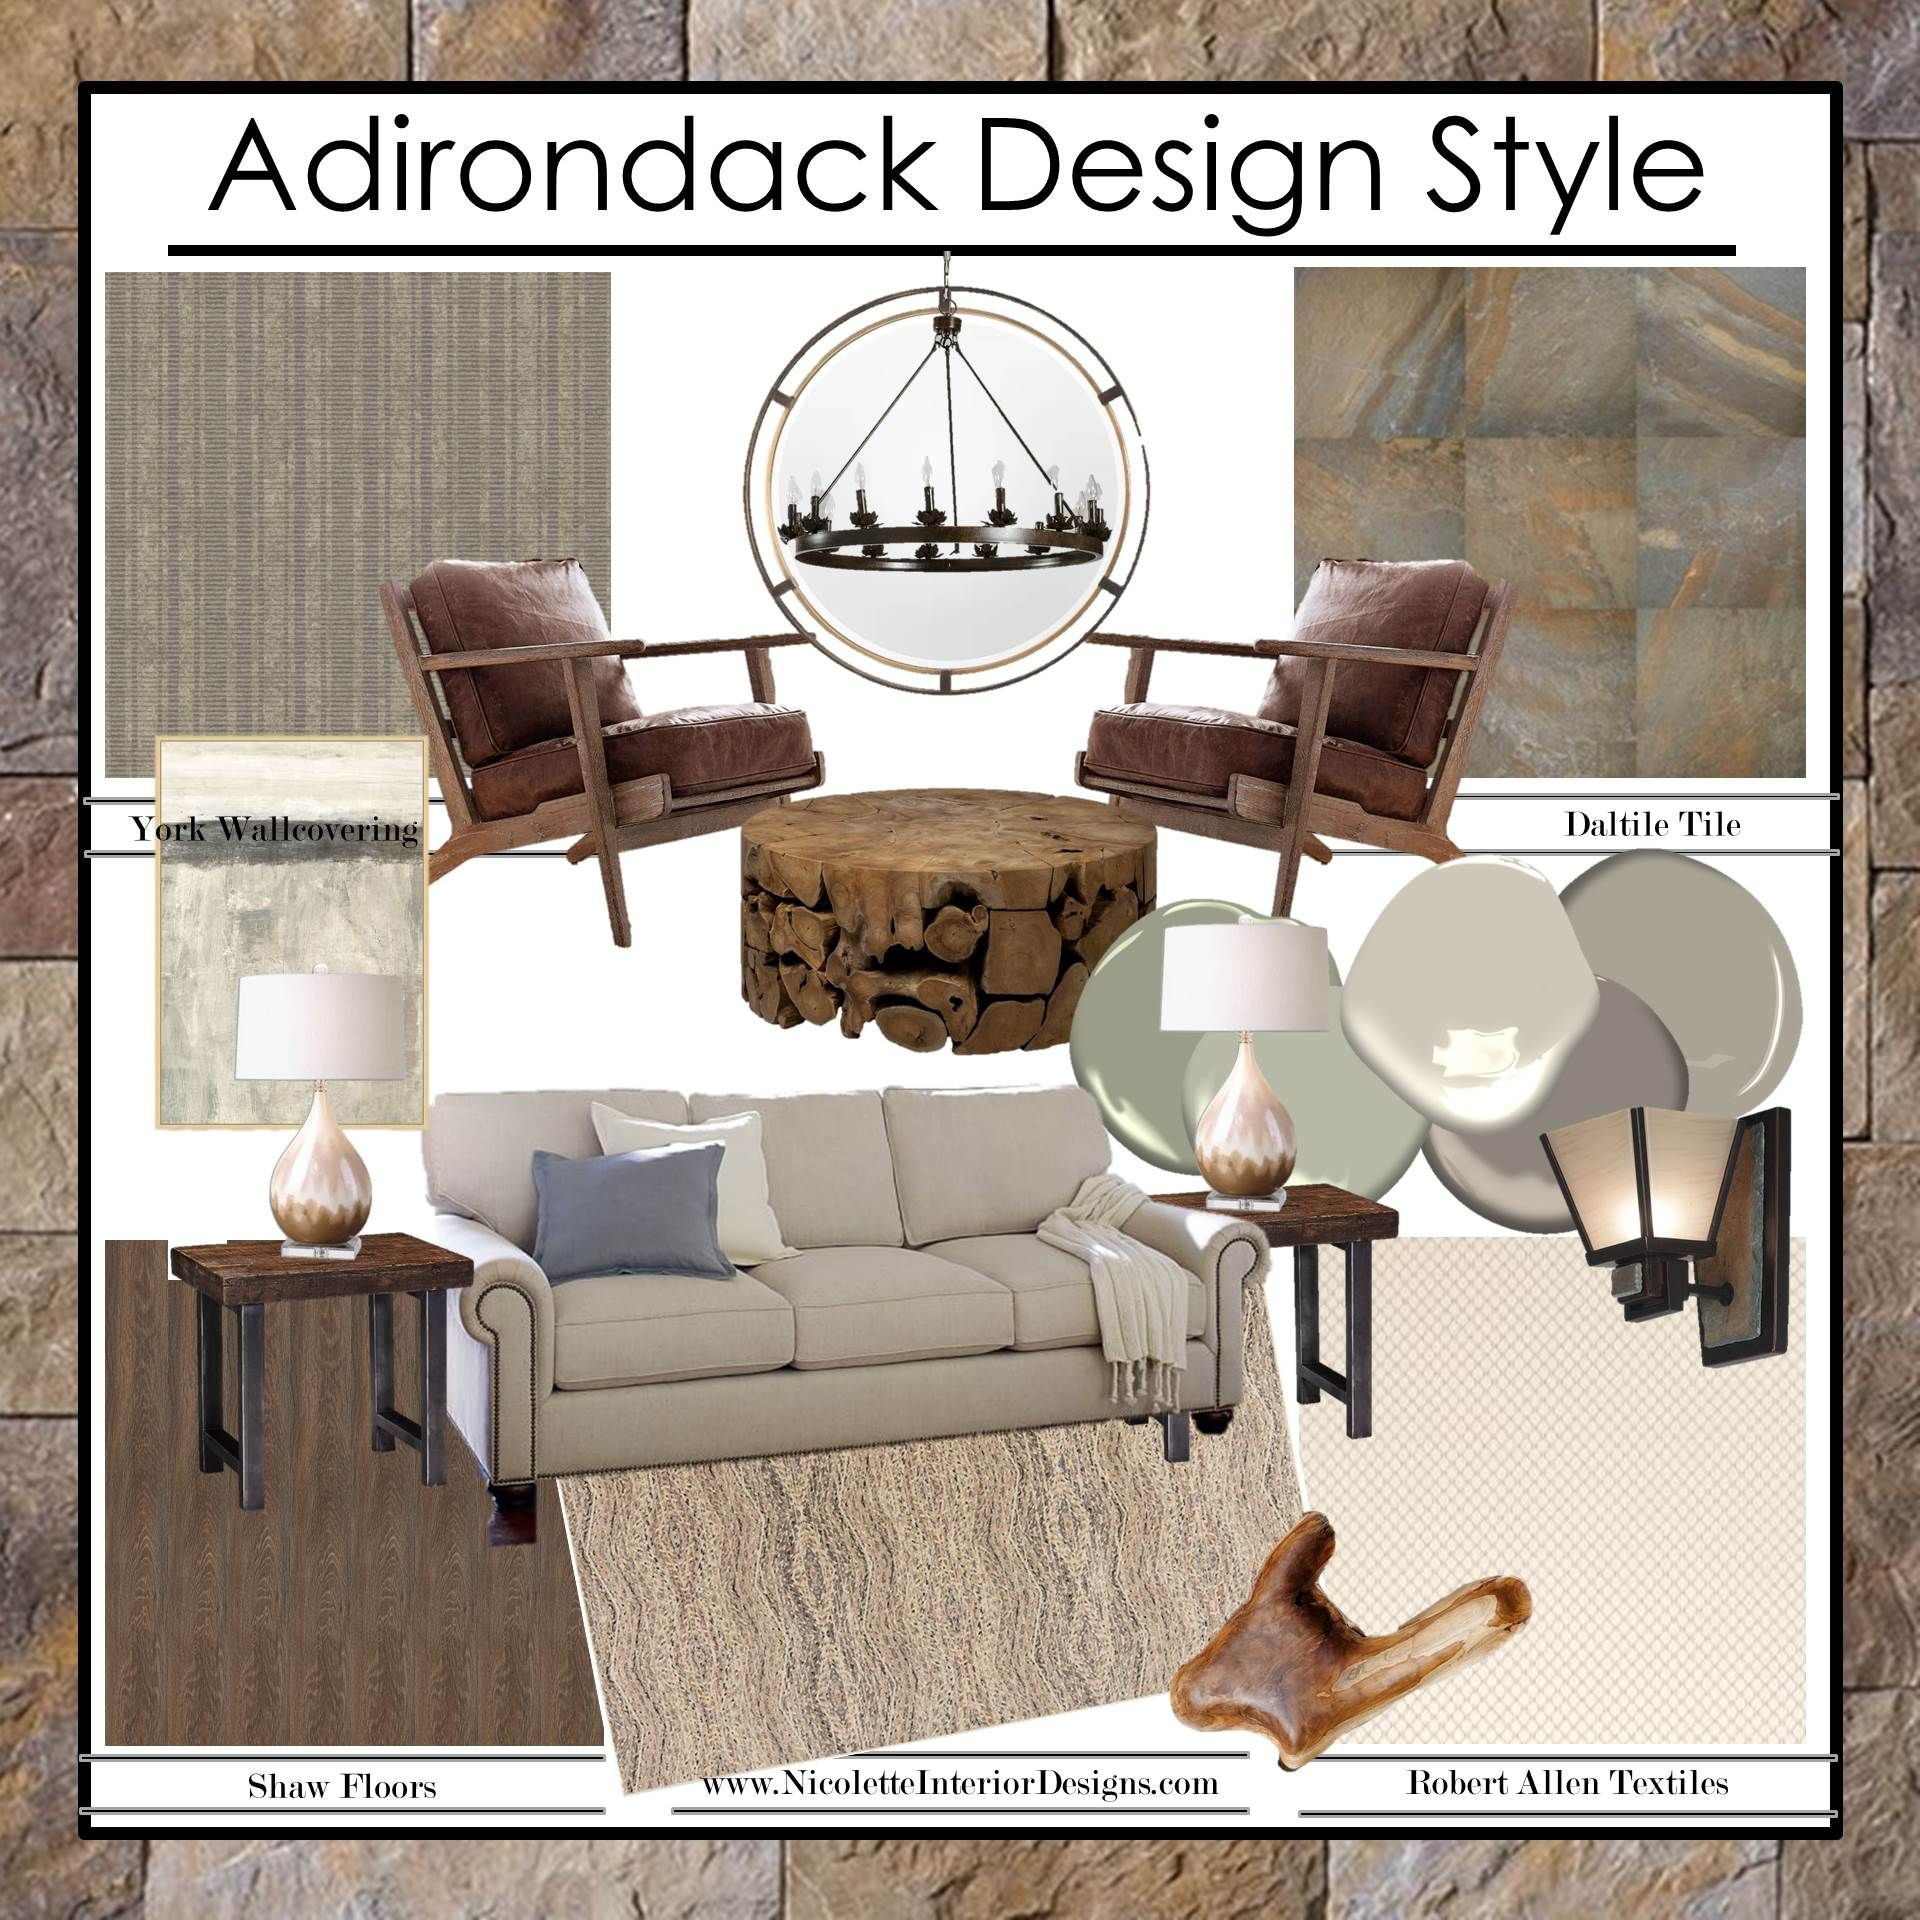 Mimicking the location it's named for, Adirondack design